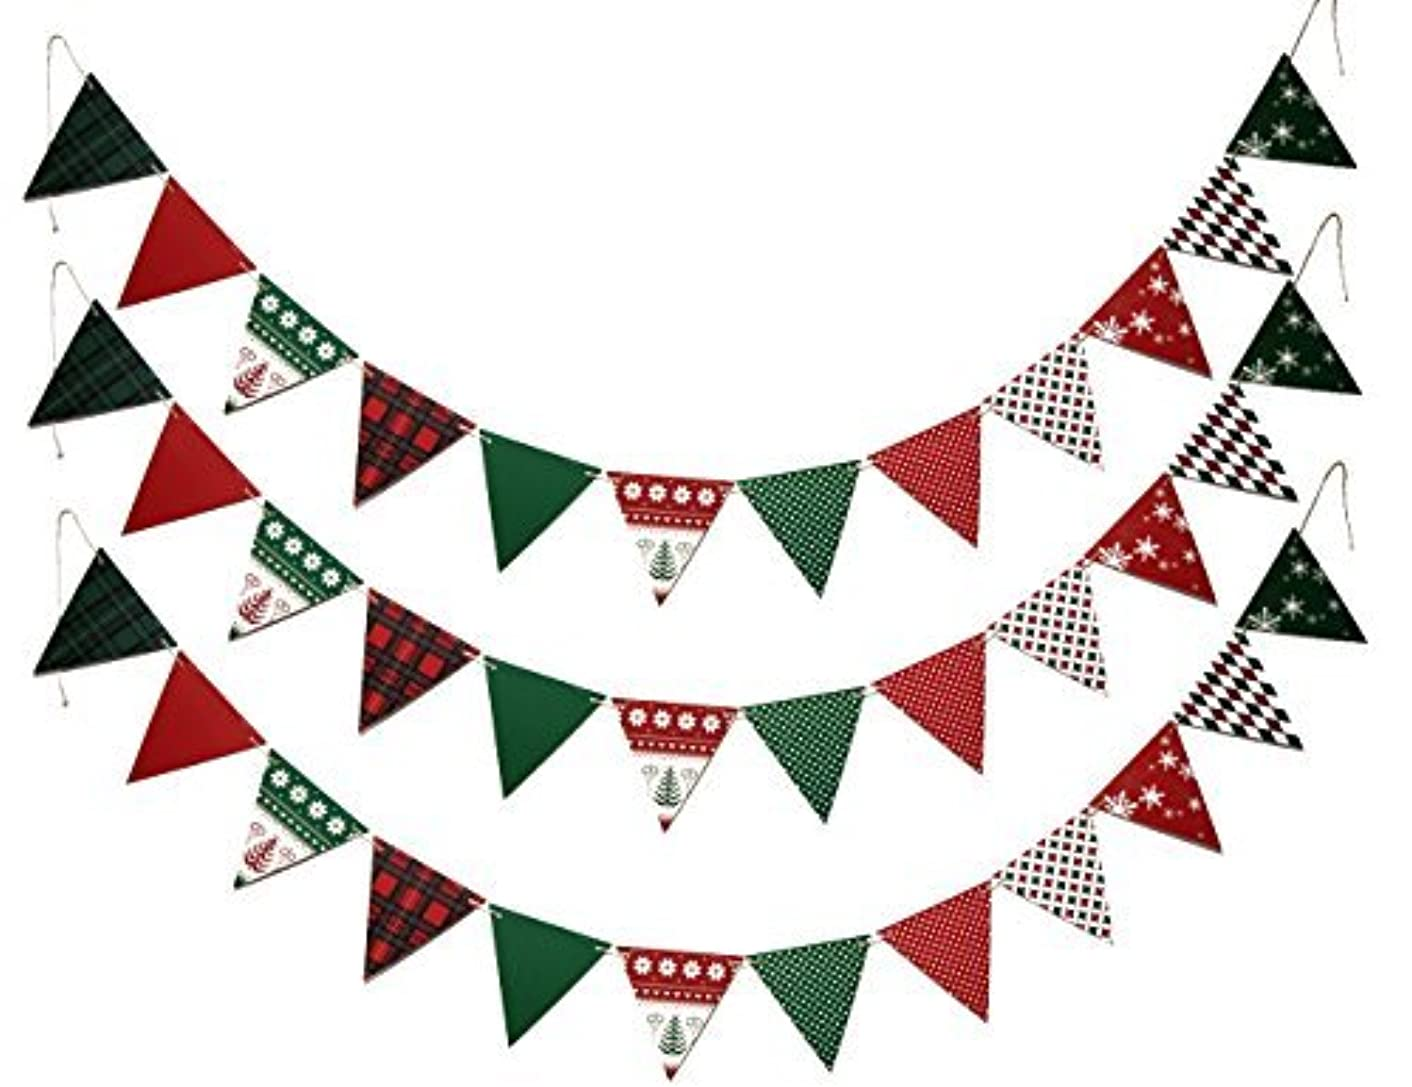 SMYLLS Merry Christmas Banner Paper Pennant Bunting Flags for Christmas Party Home Decoration,3 Pack